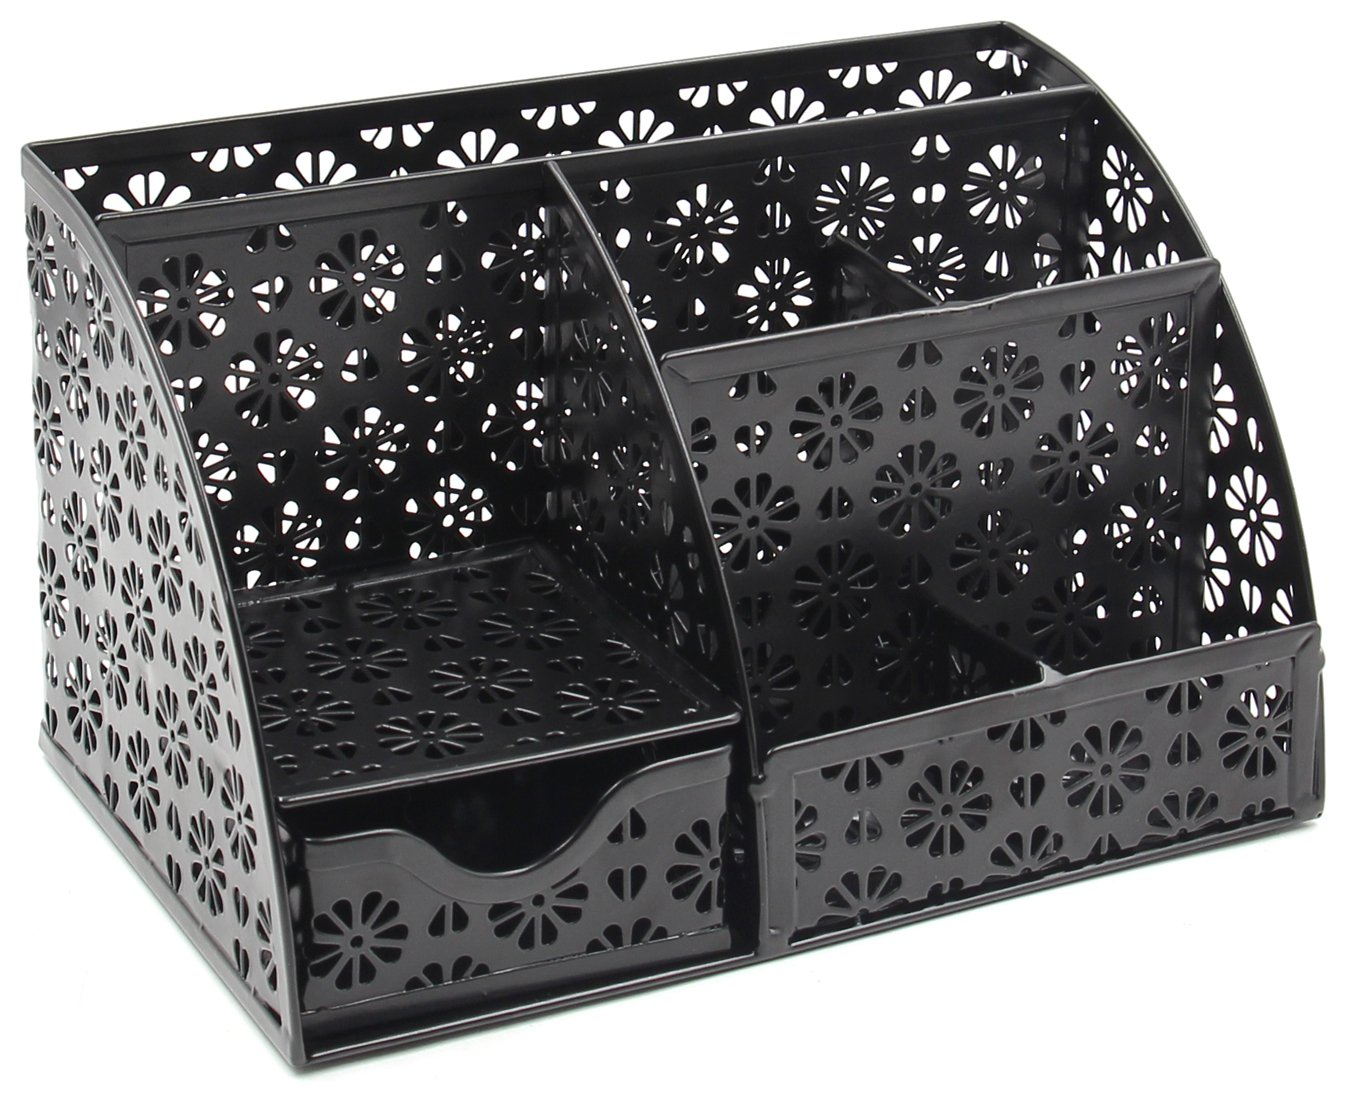 EasyPAG Office Desk Organizer with Drawer Solid Metal Snow Shaped Pattern Design,Black by EasyPag (Image #1)